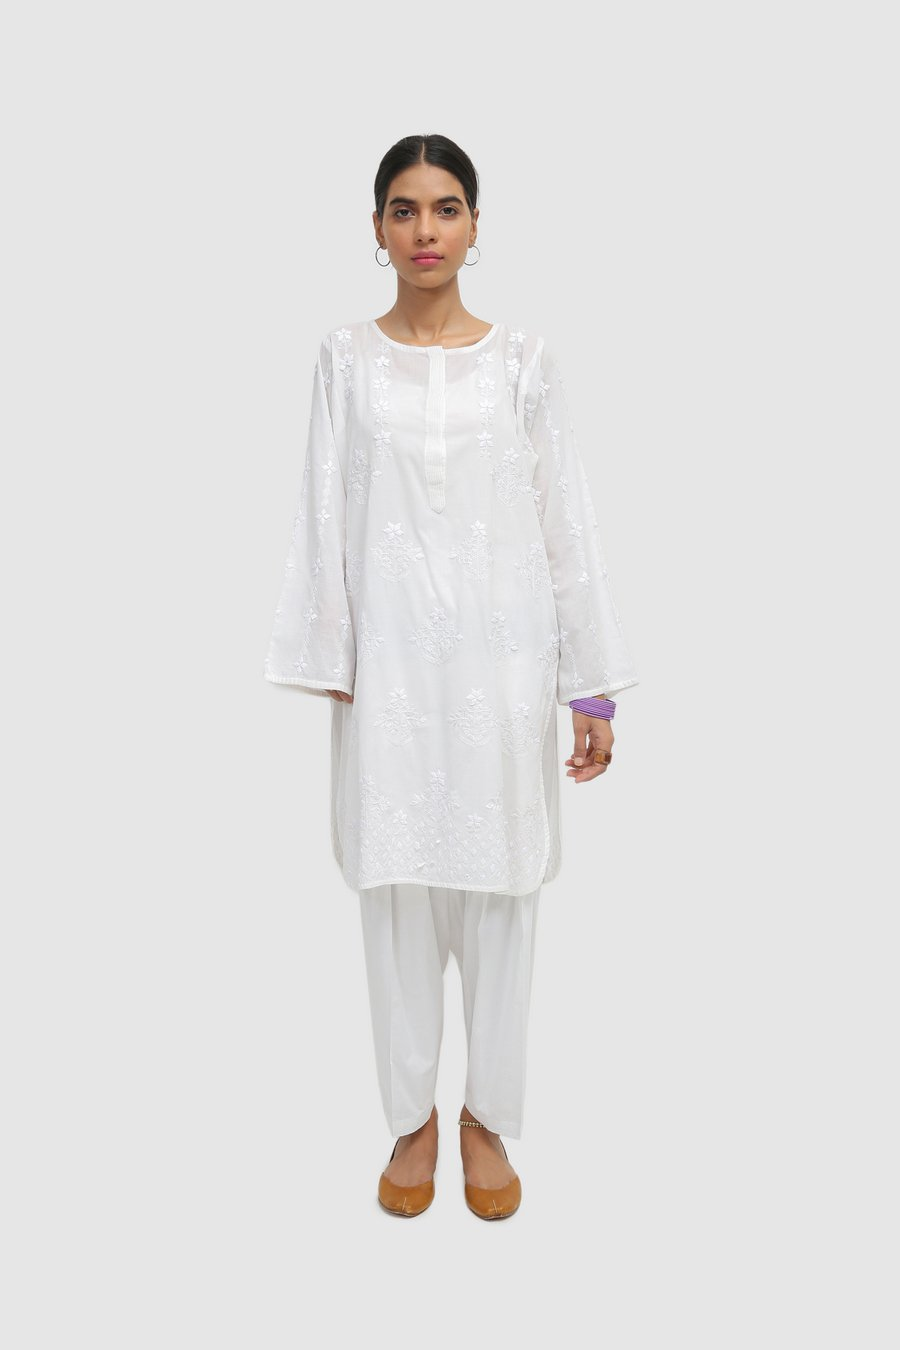 Generation-Stitched-2 - Piece Summer Eid Collection  Generation White Hand Embroidered 2-Pc Lawn Cottage-S20T0496-White